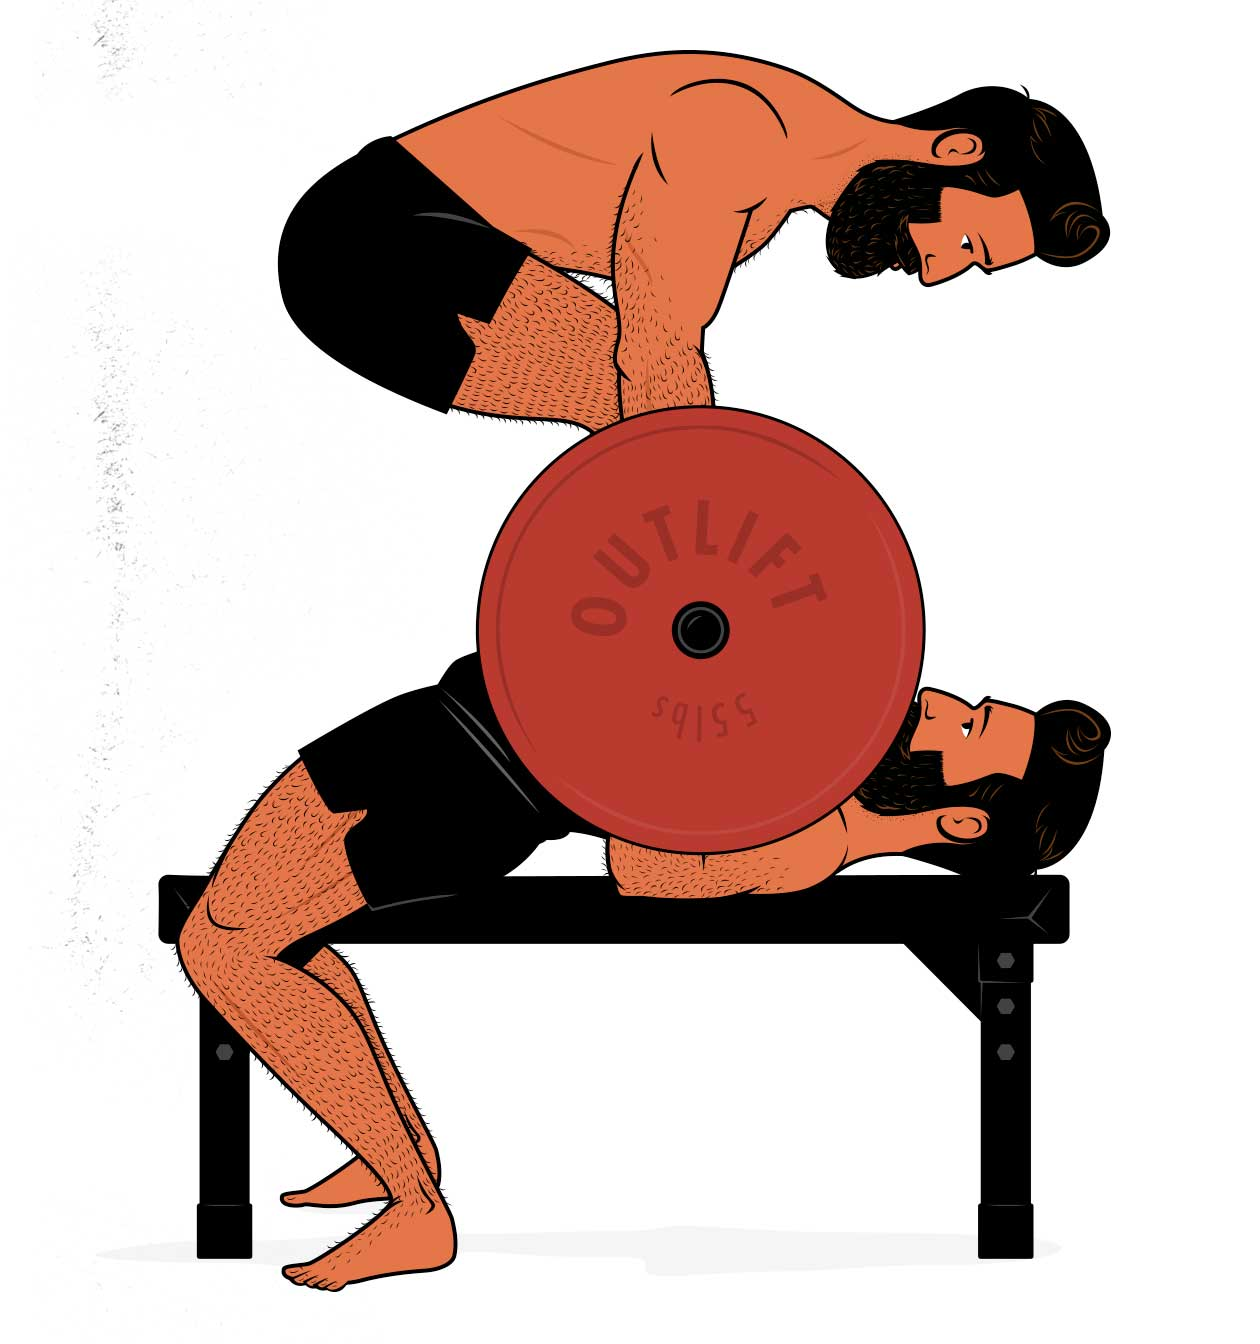 Illustration of a bodybuilder doing a bench press and barbell row superset to gain muscle mass.